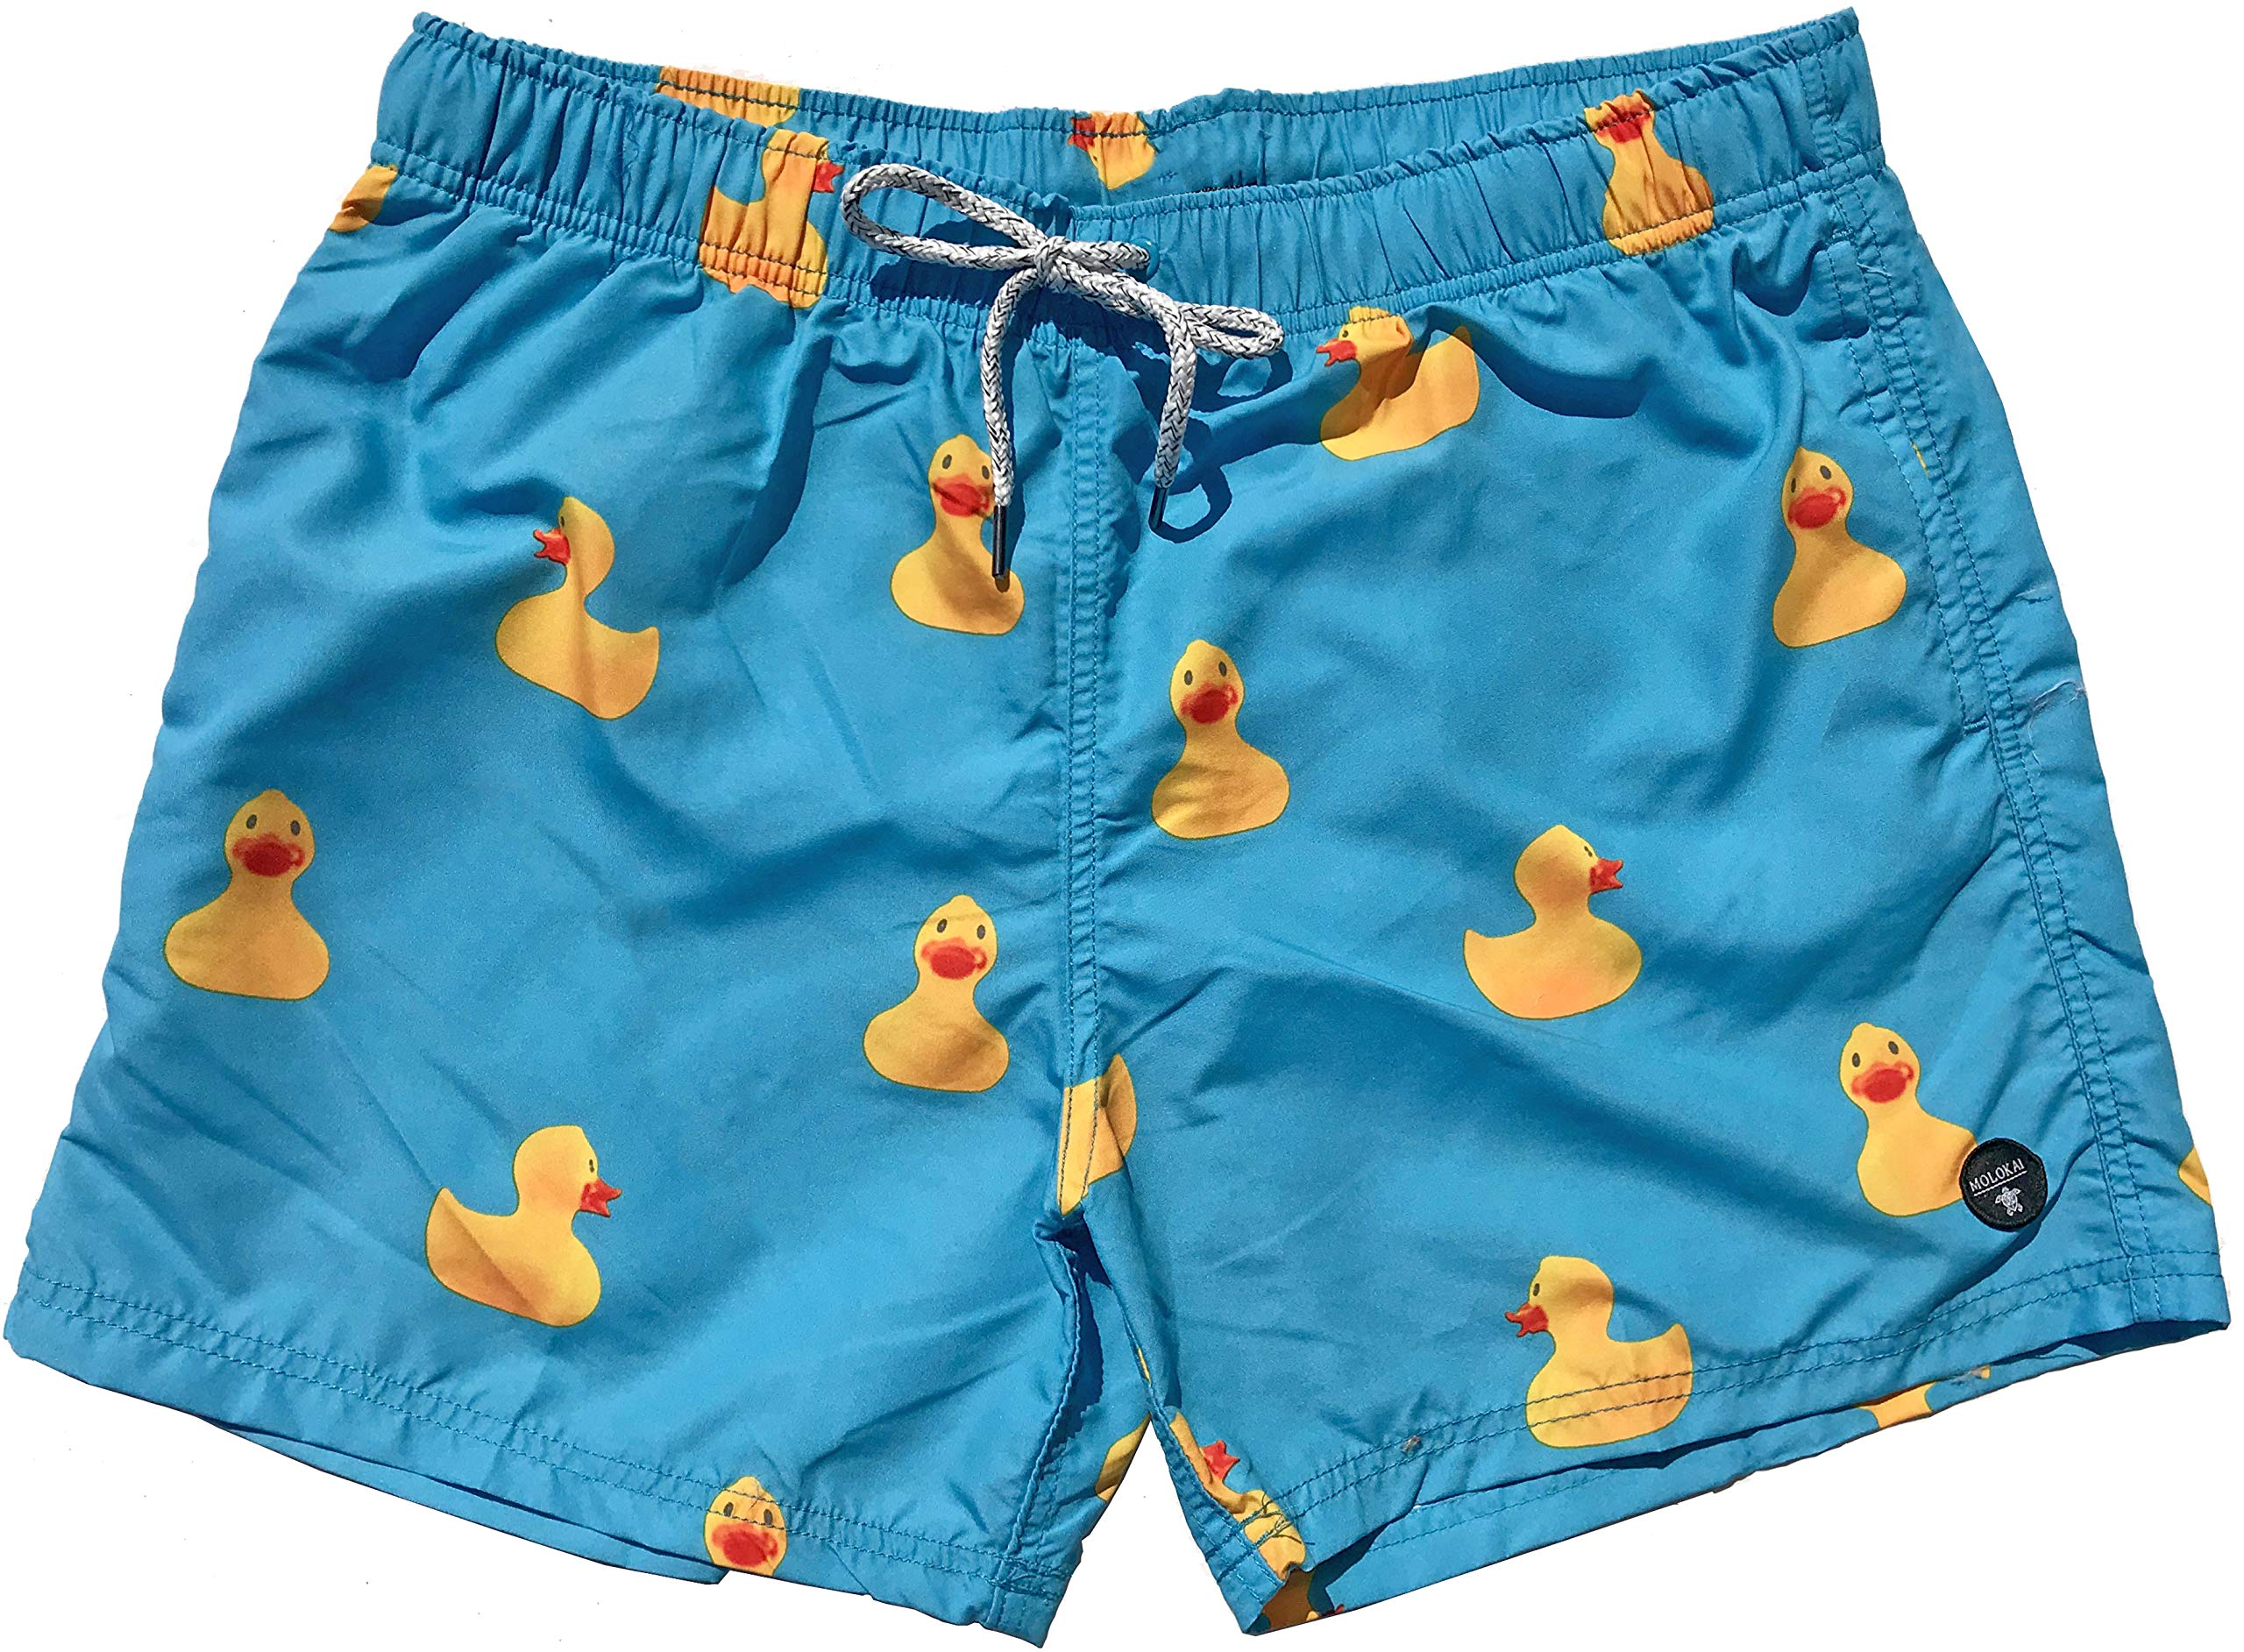 Official Molokai Swim Trunks and Shorts (Rubber Ducks, Medium) by M MOLOKAI SURF